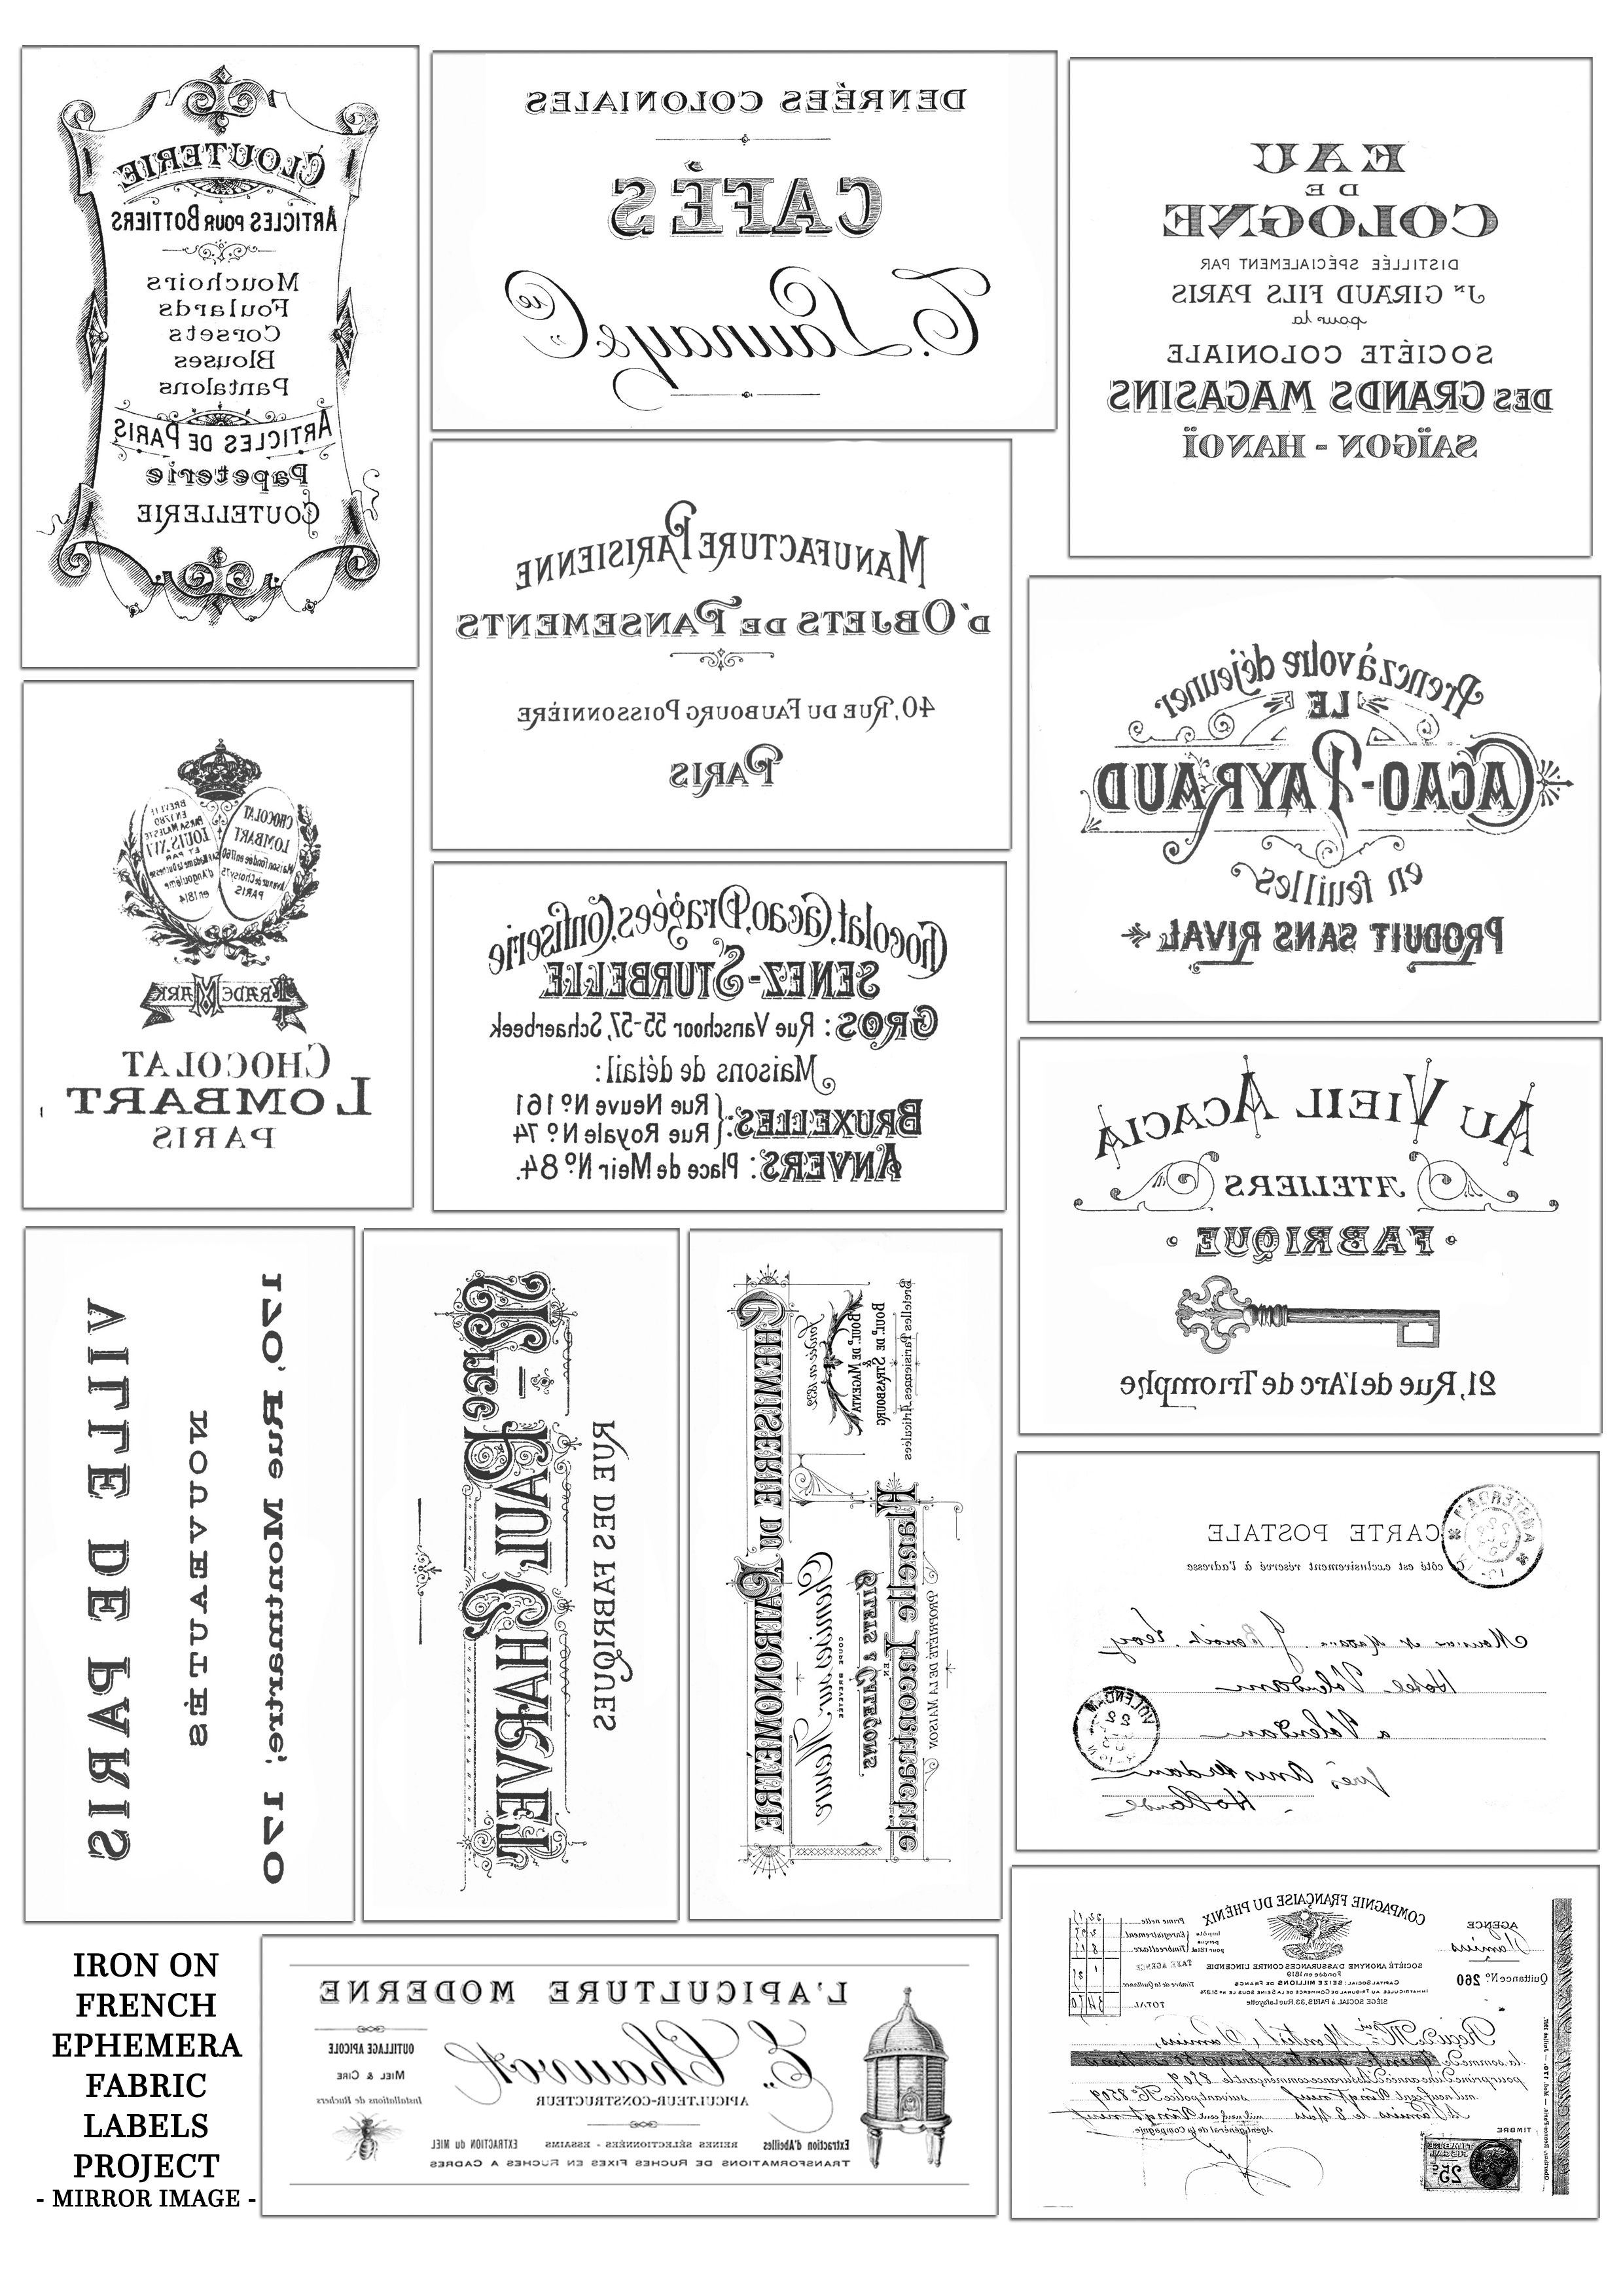 French Ephemera Fabric Labels Or Tags – Mirror Image | Pictures - Free Printable Mirrored Numbers